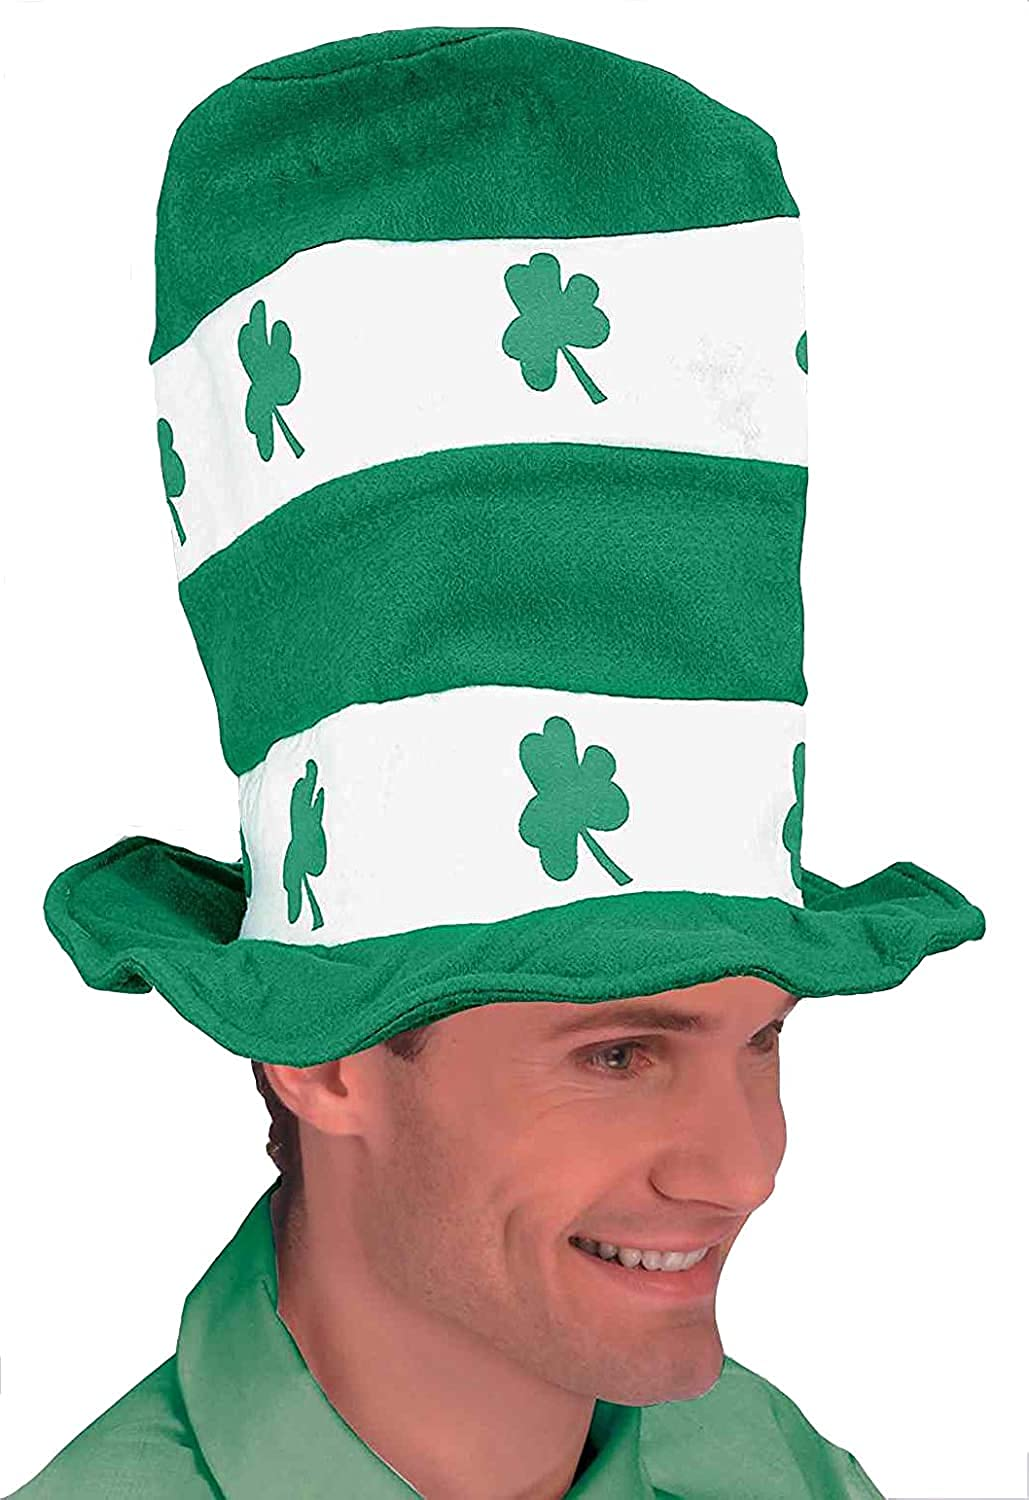 Japan Maker Raleigh Mall New Forum Novelties St. Patrick's Hat Costume Stovepipe Day